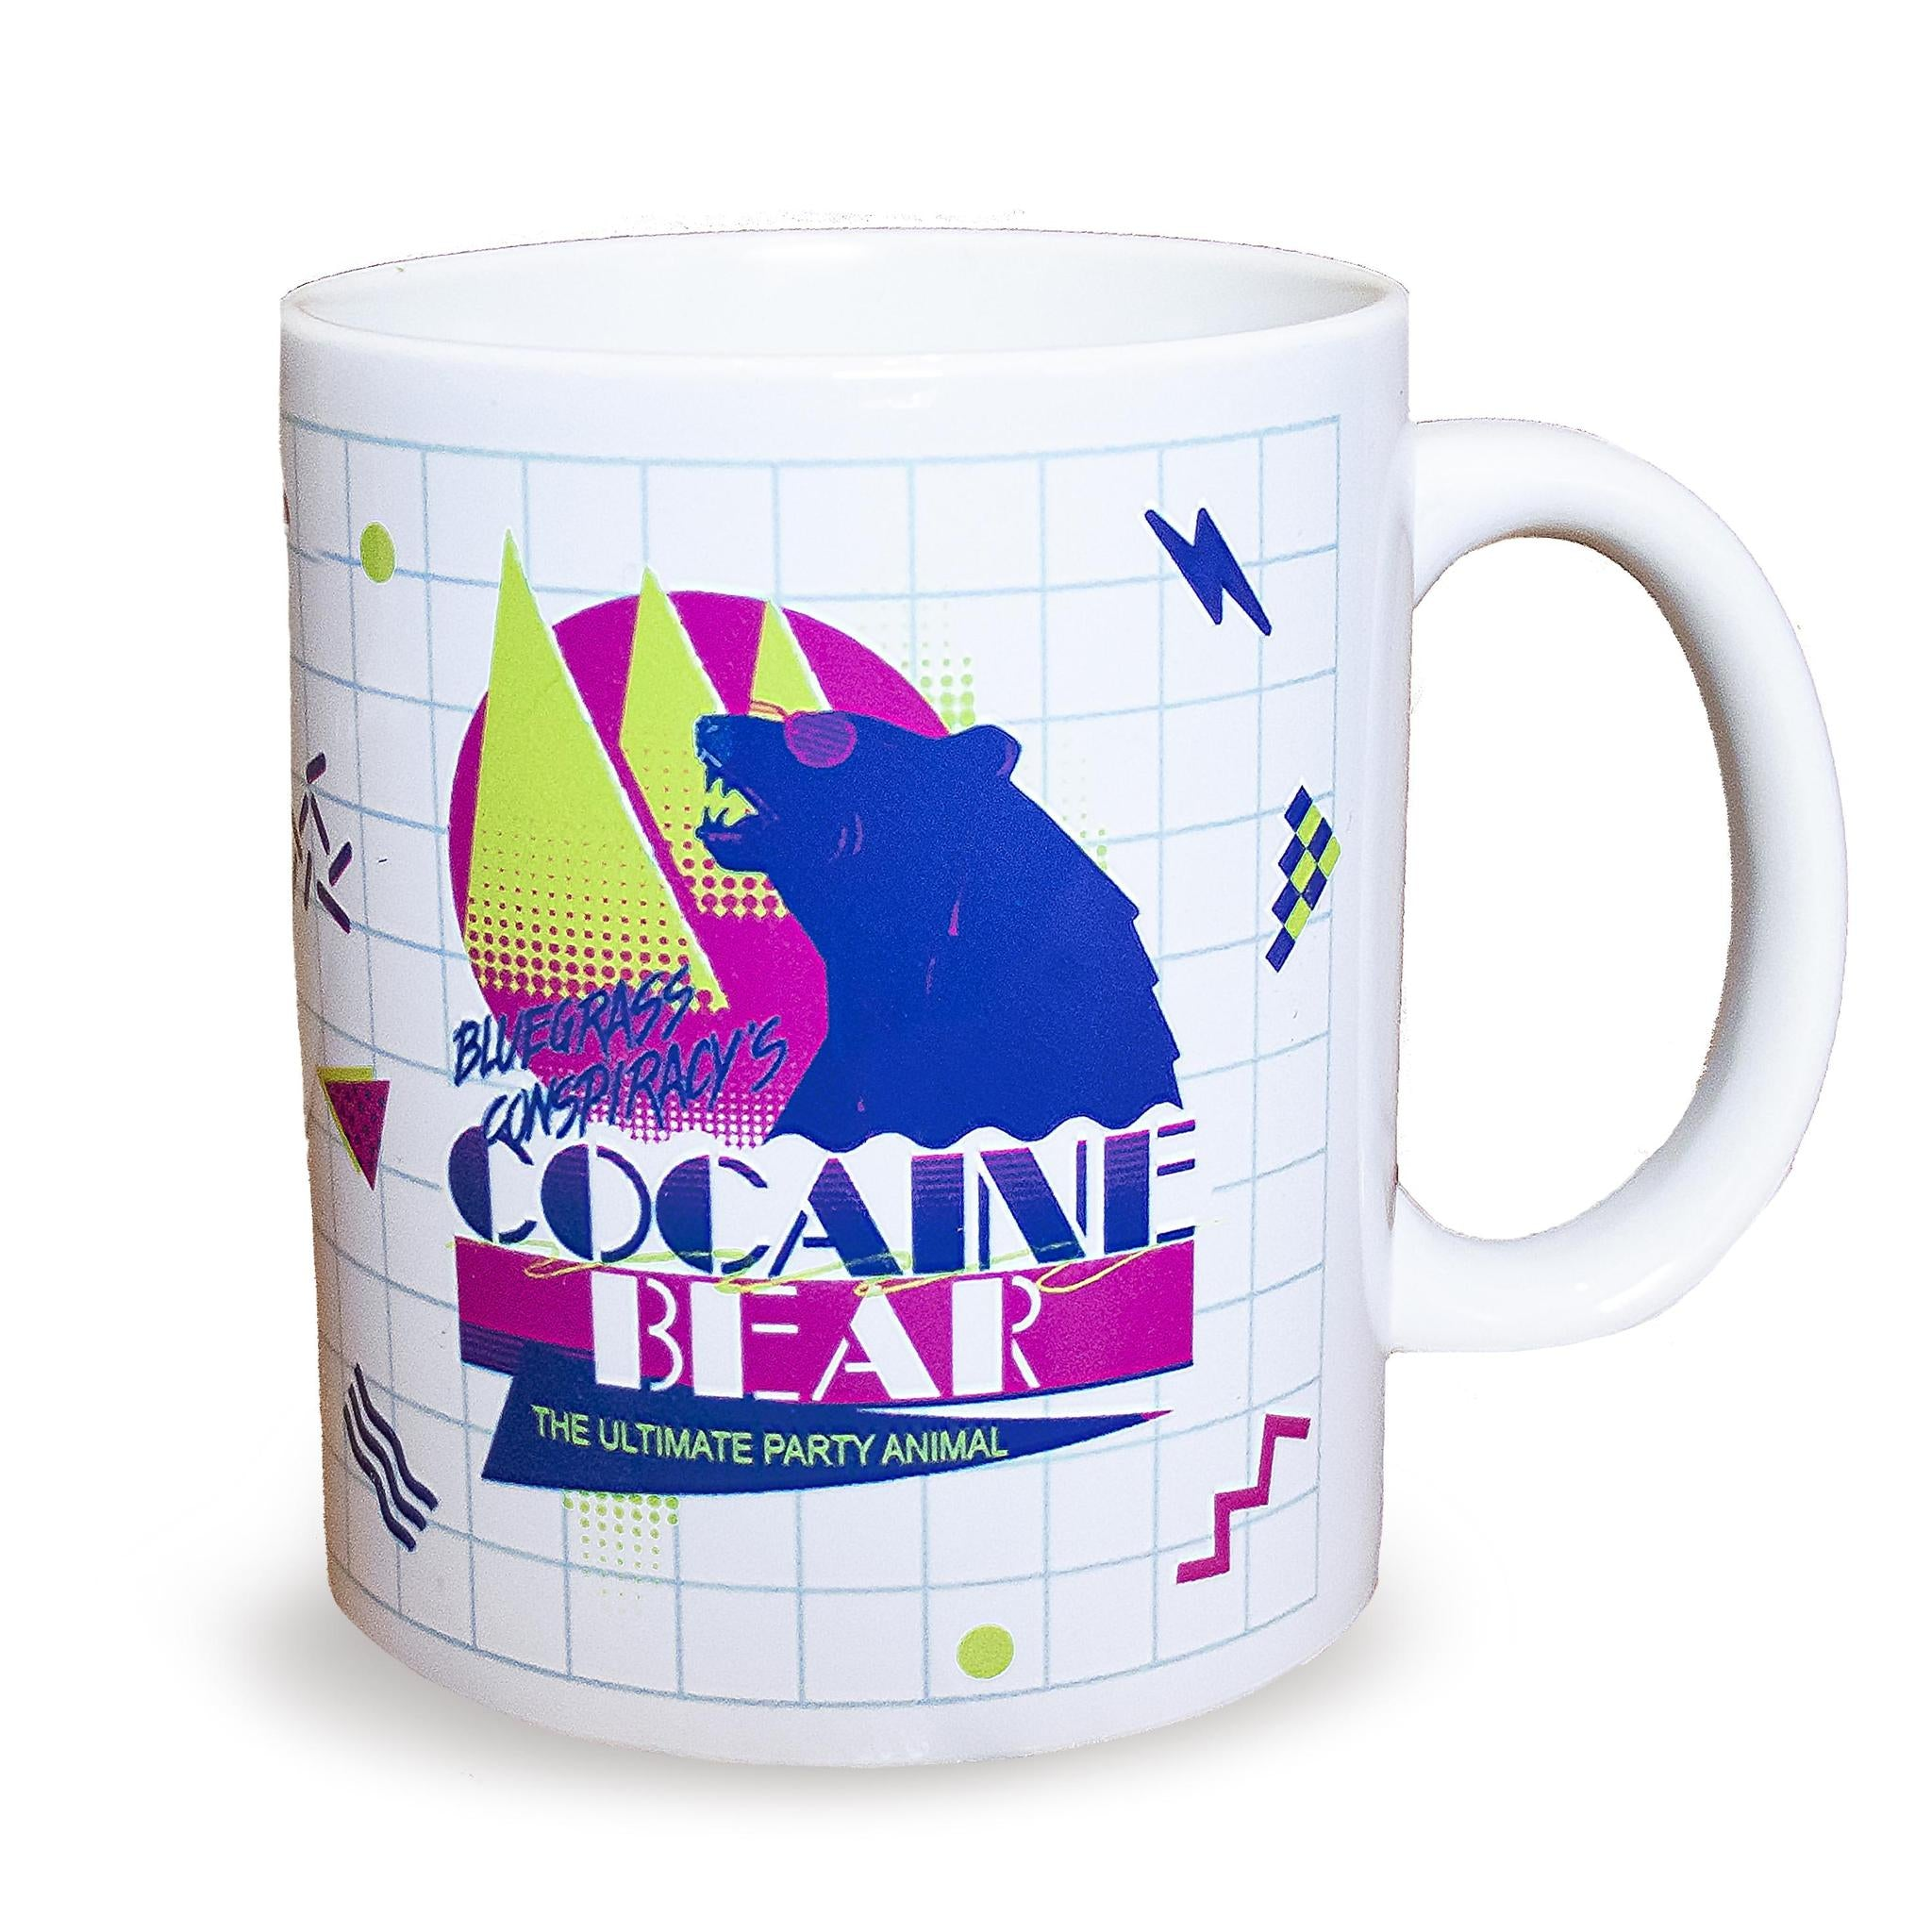 Cocaine Bear Mug-Odds and Ends-KY for KY Store